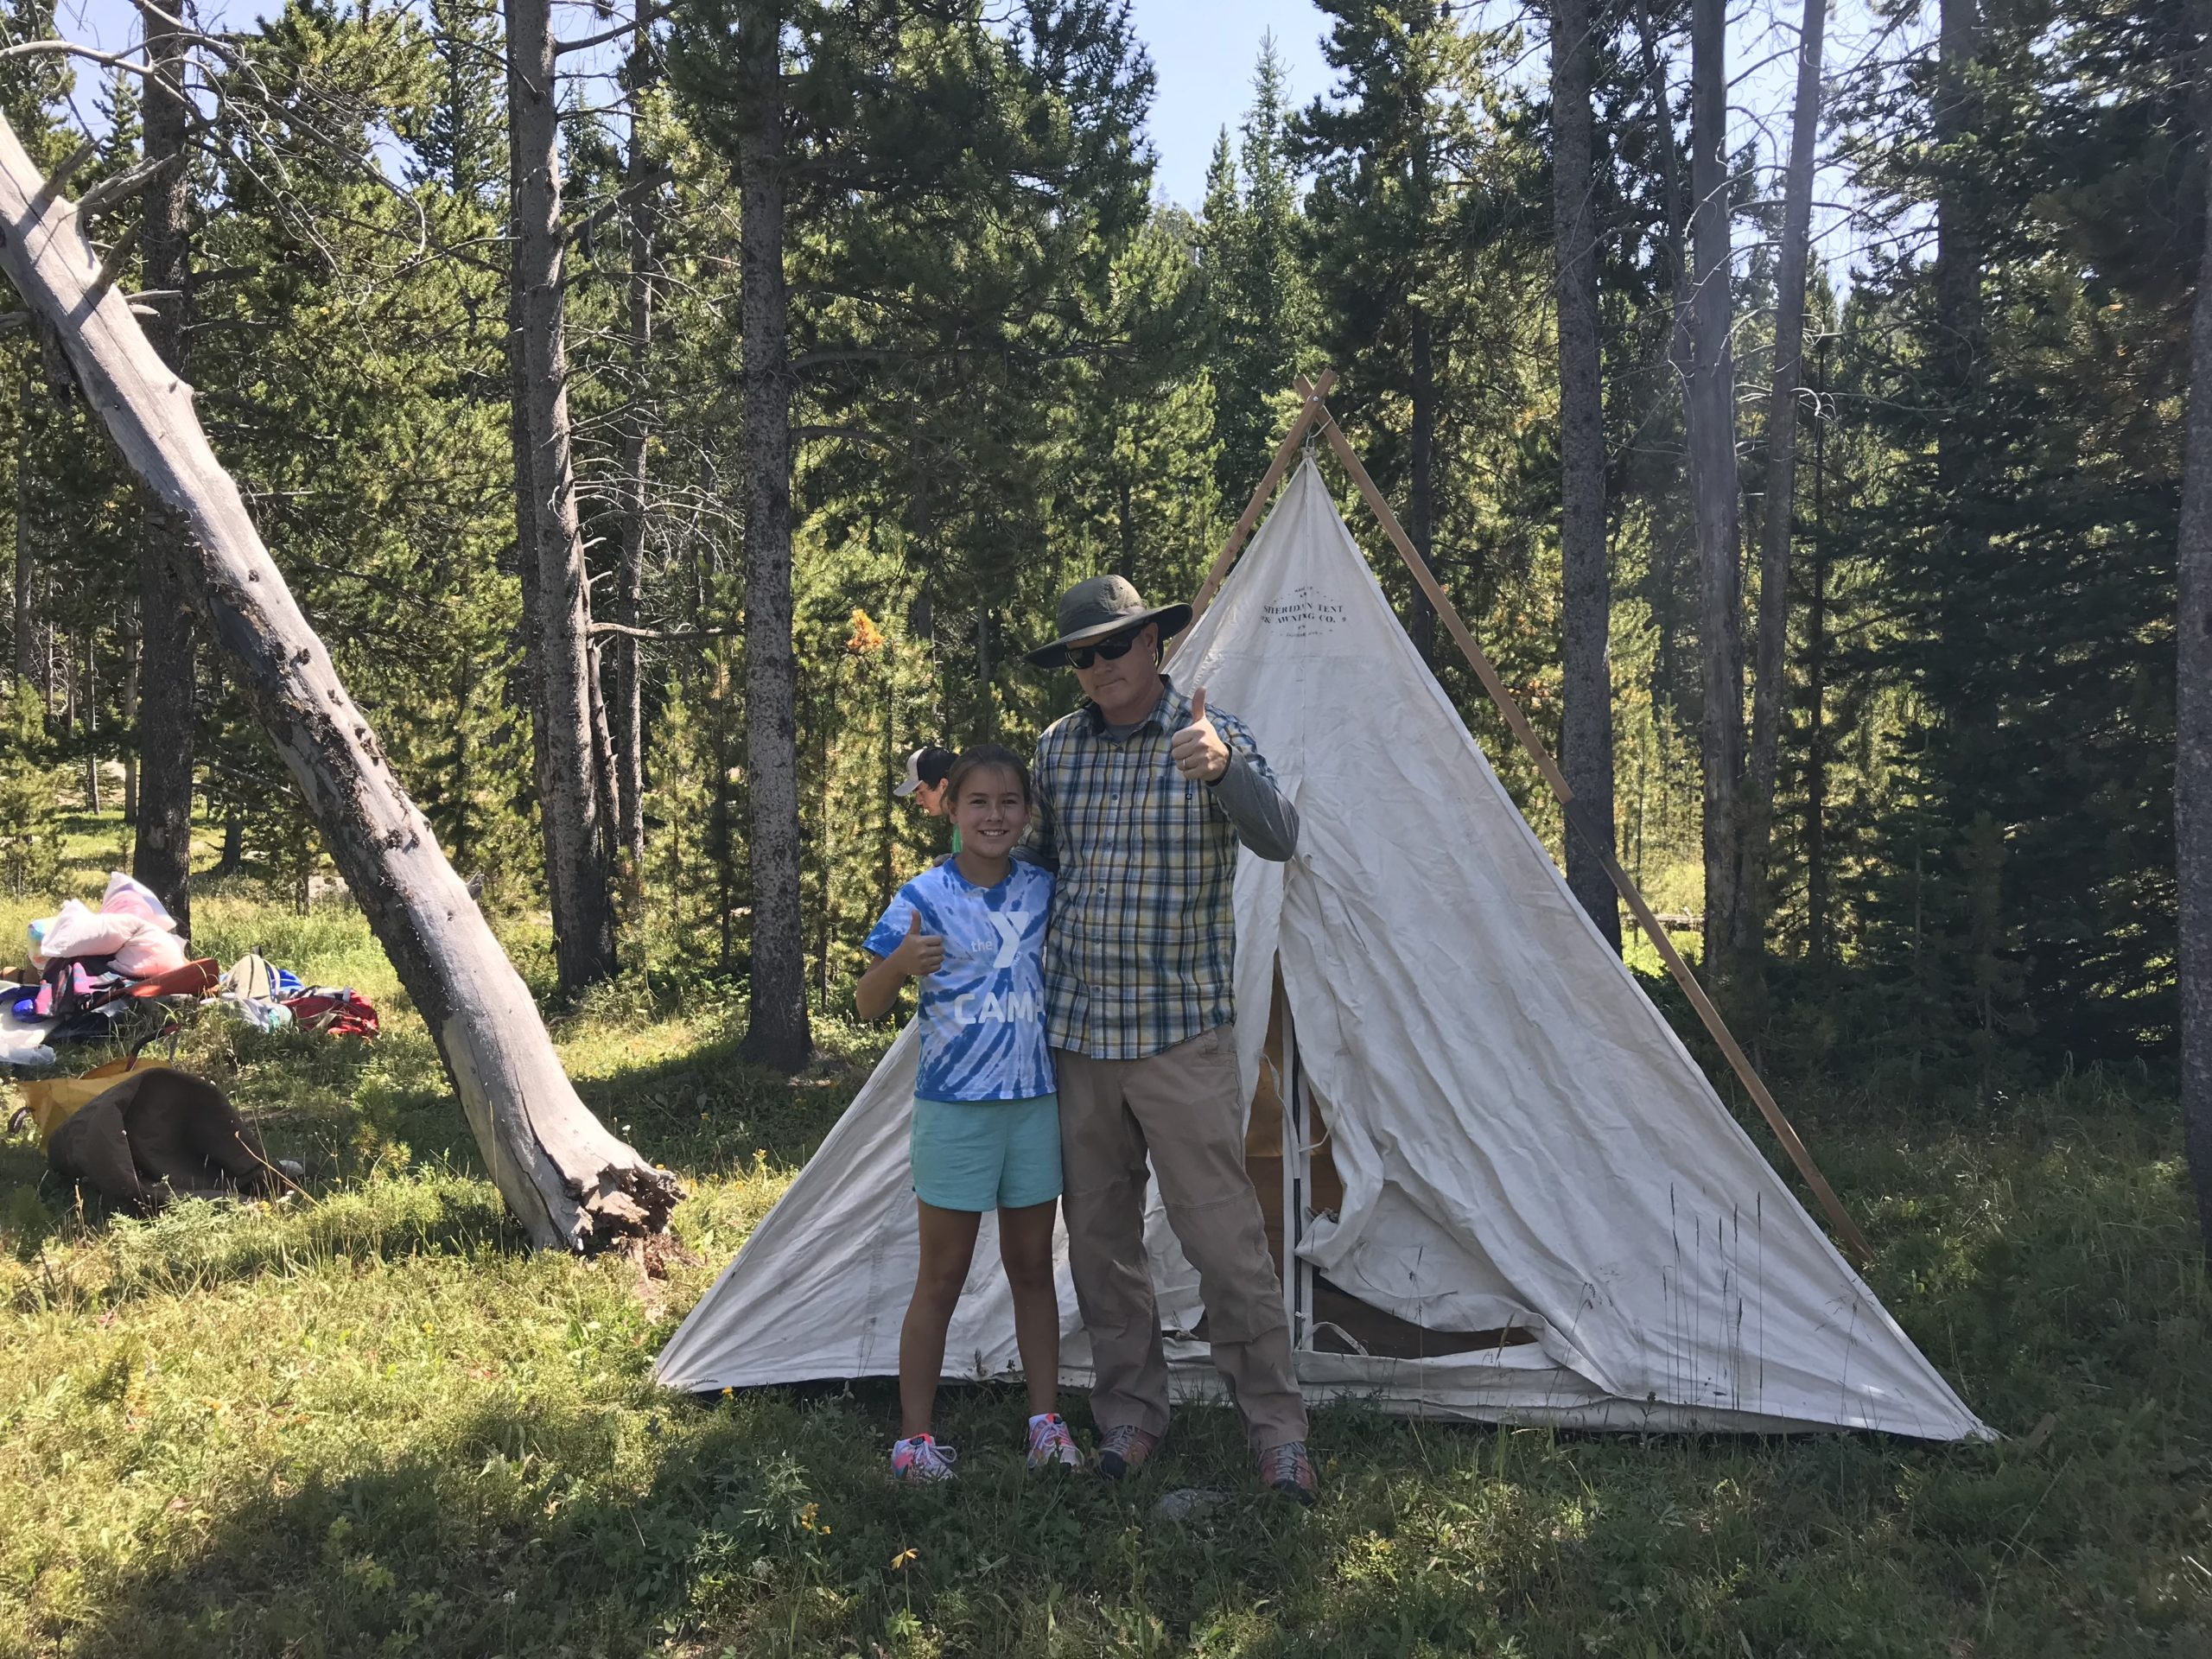 17 Reasons to Go Camping